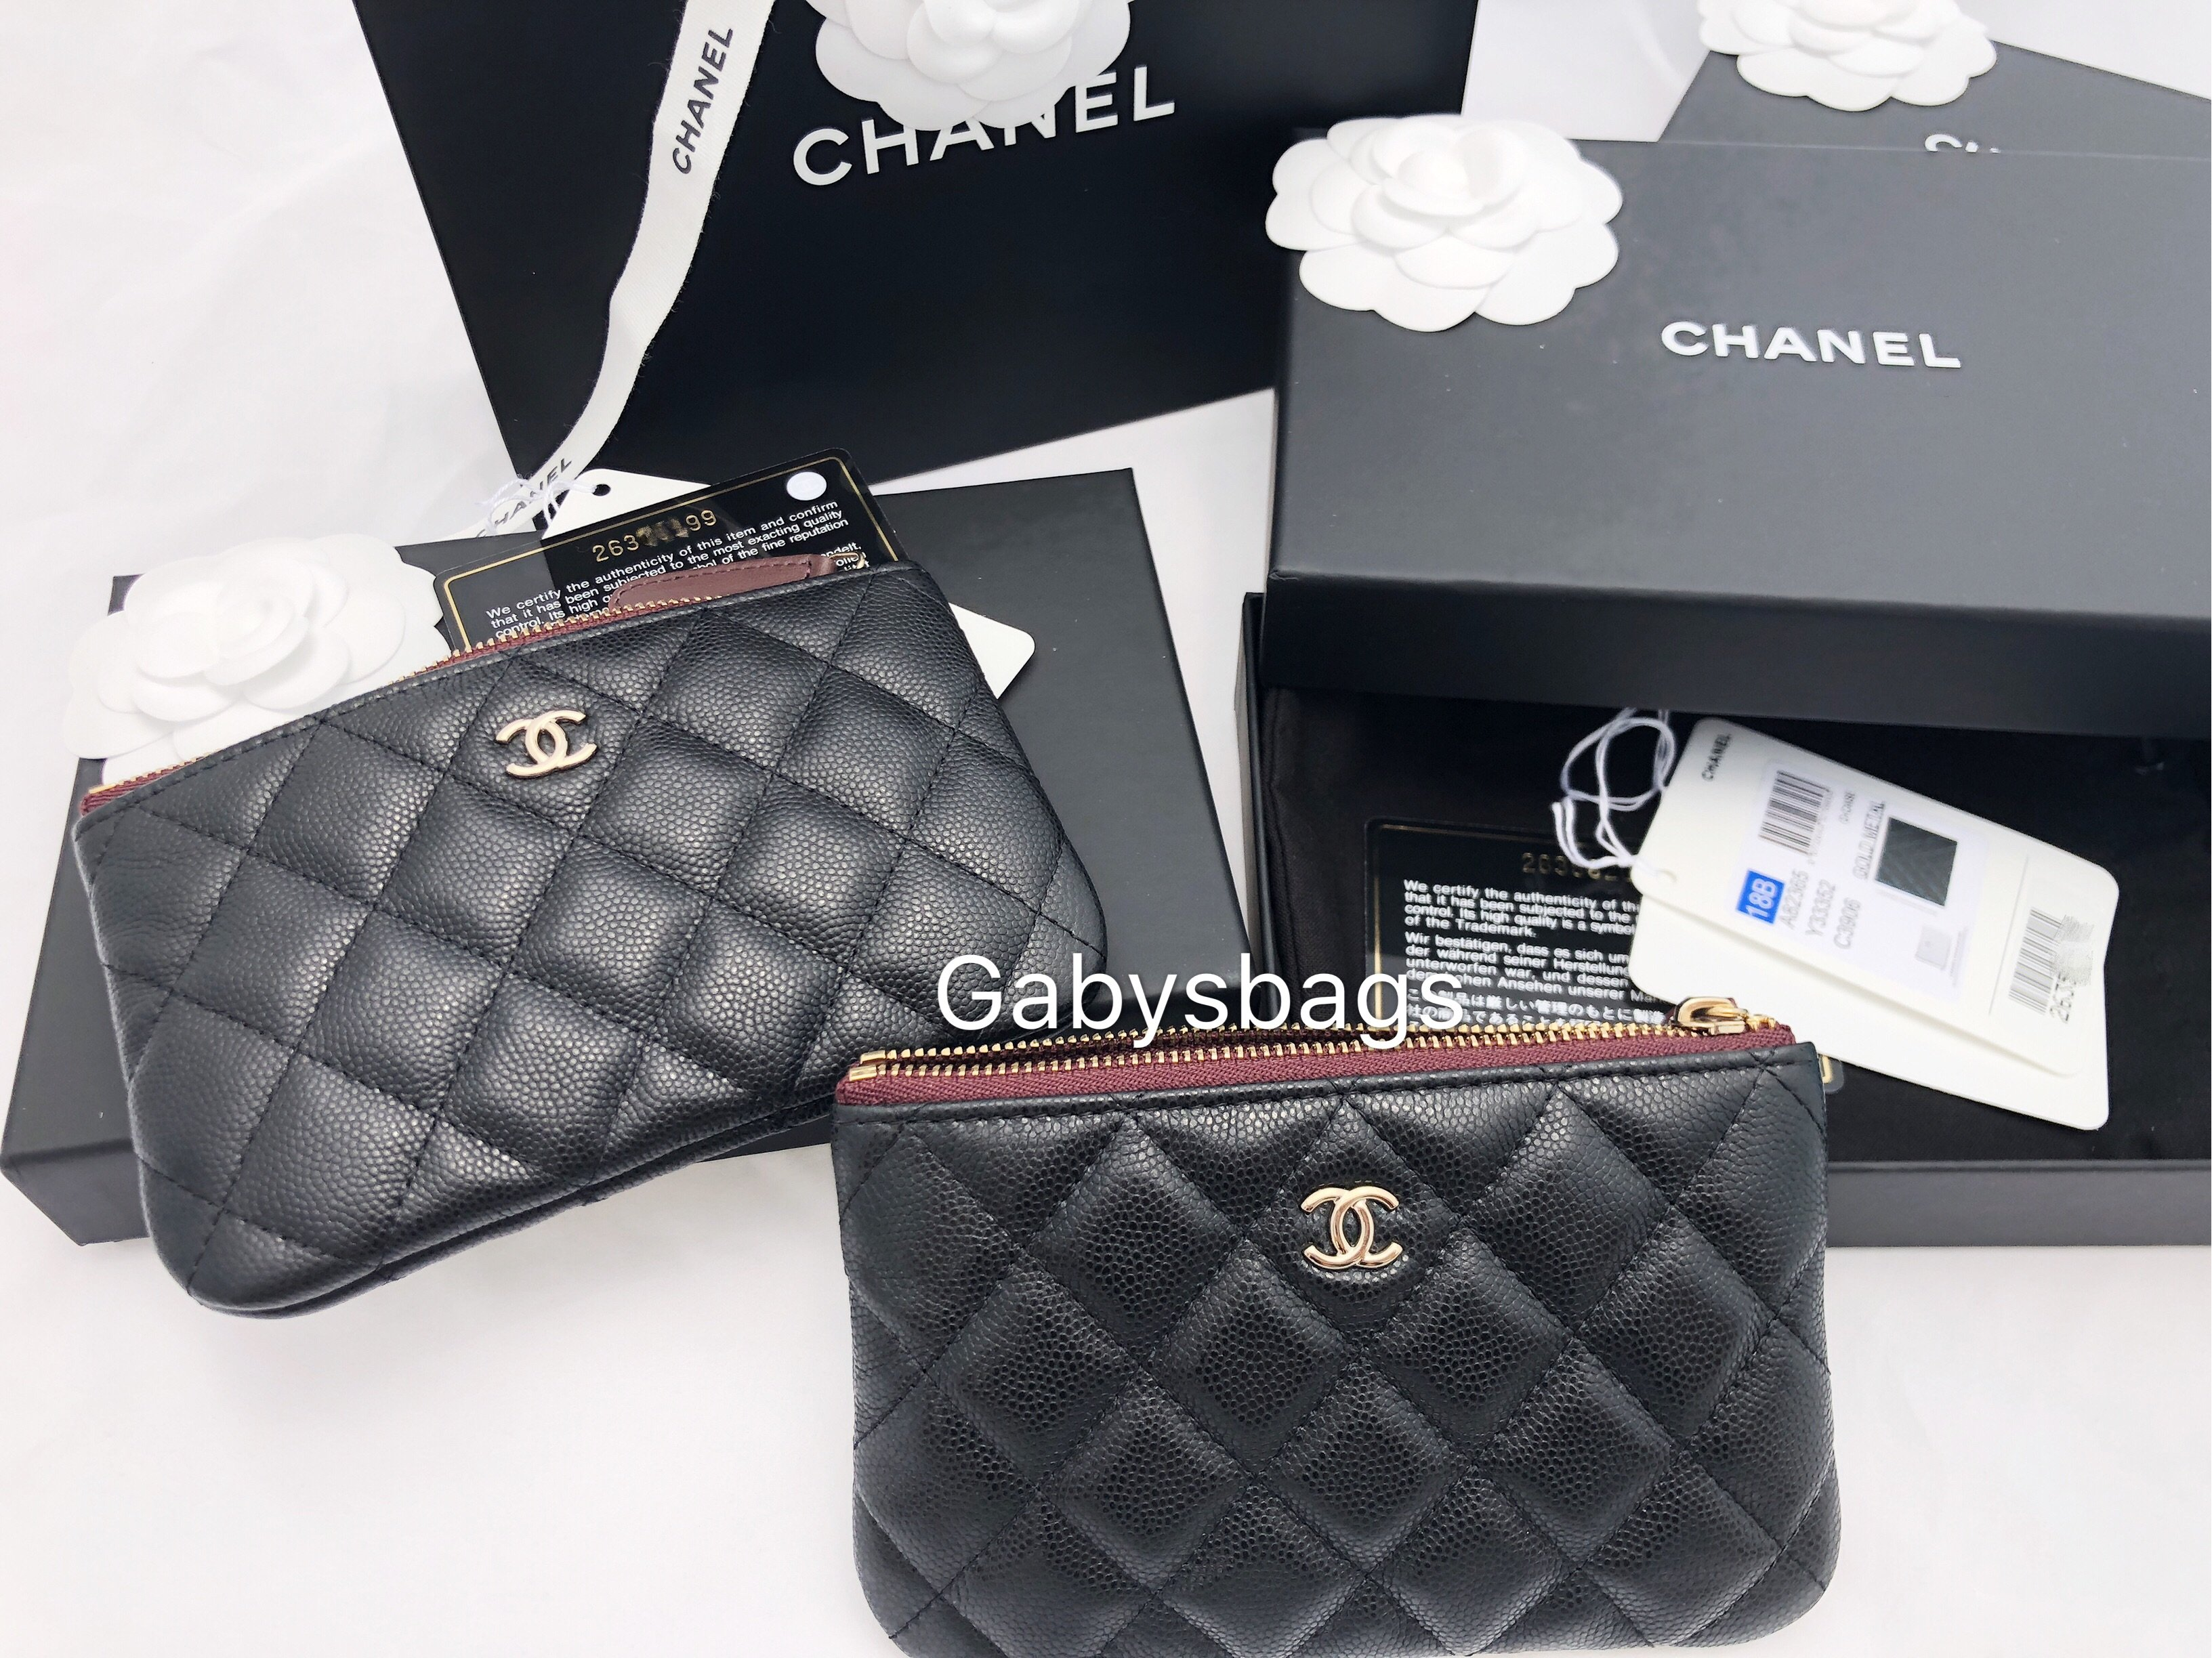 Chanel Caviar Small O Case Card Holder Cosmetic Black Zip Wallet ... 2e66065356